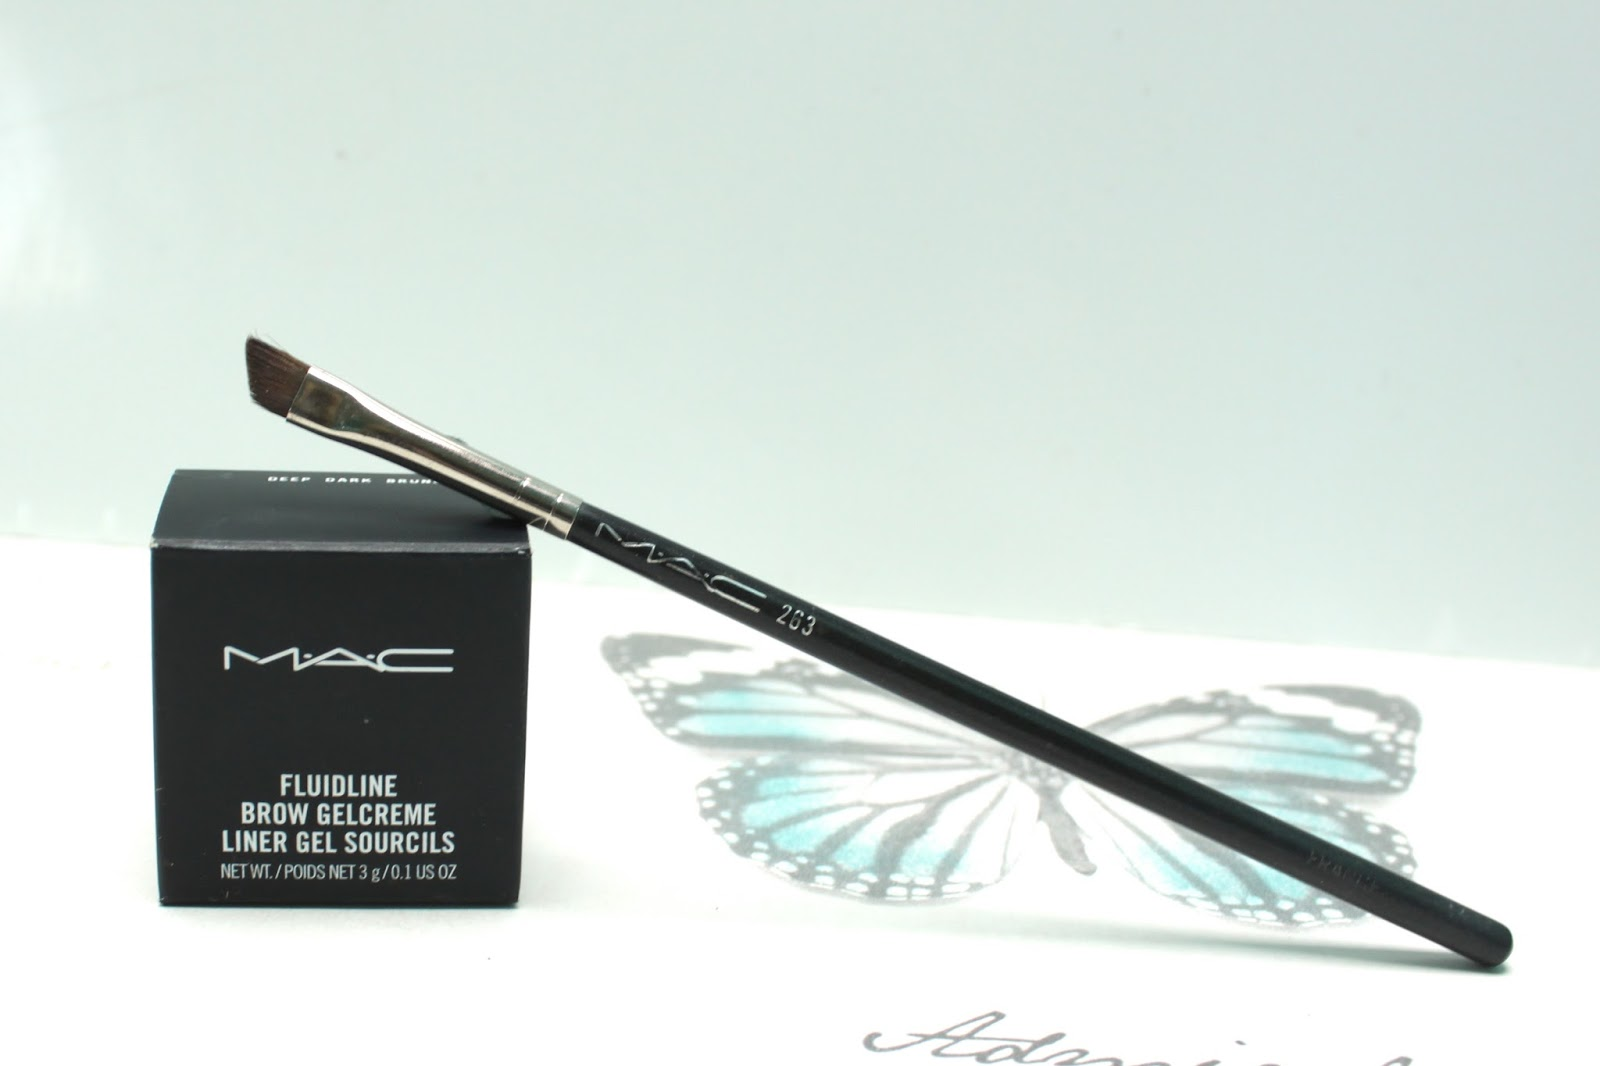 The Best Brow Product for Strong Brows - Mac Fluidline Brow Gelcreme